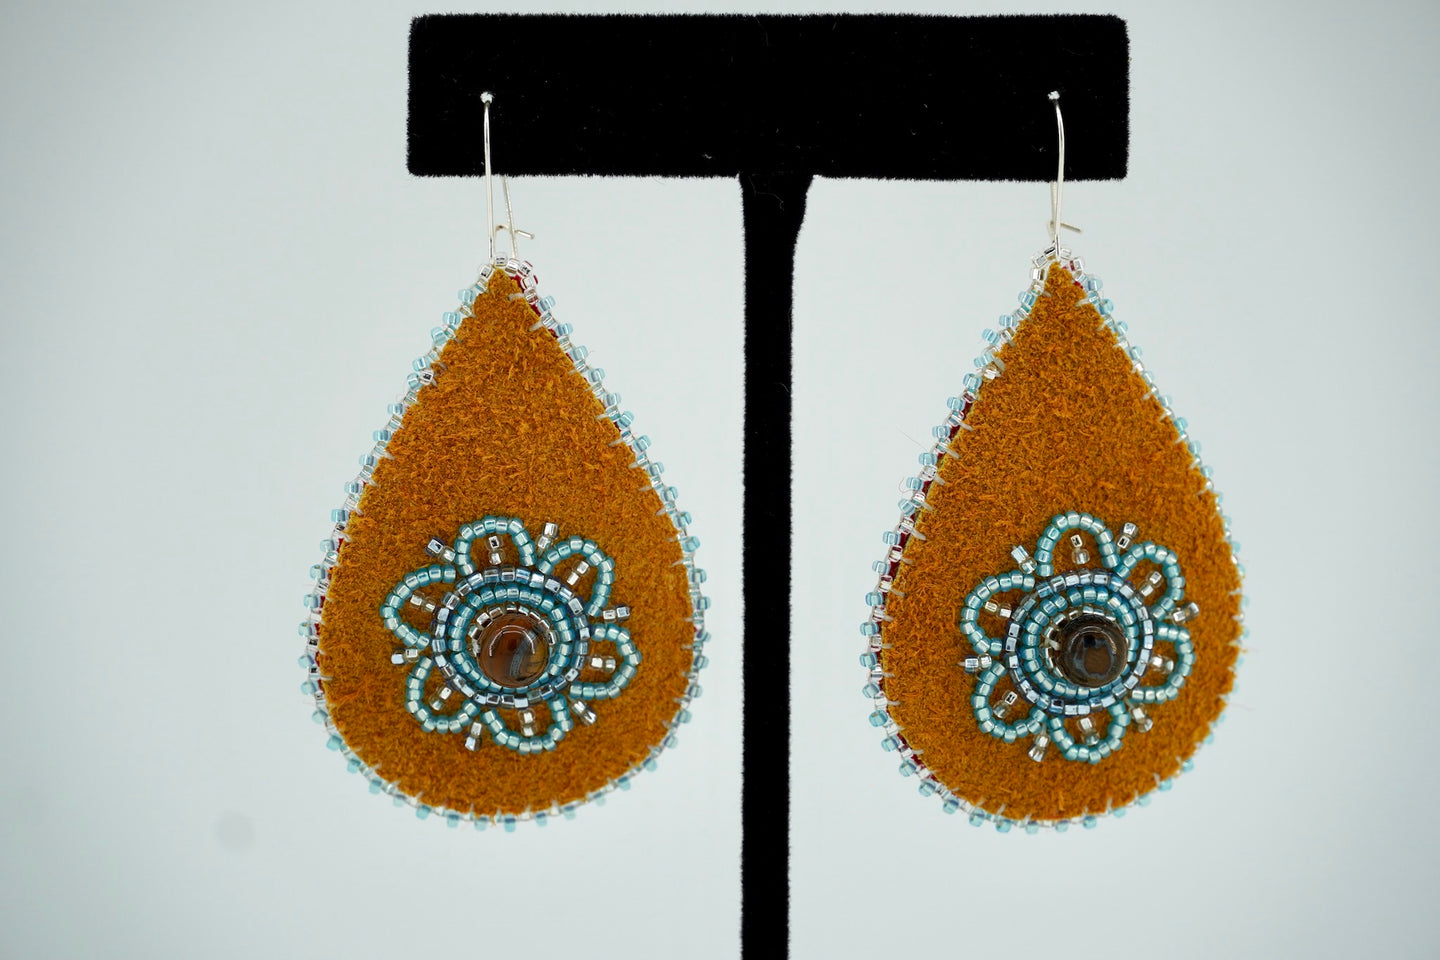 Tigereye Teardrop Earrings by Teresa Vander Meer-Chassé